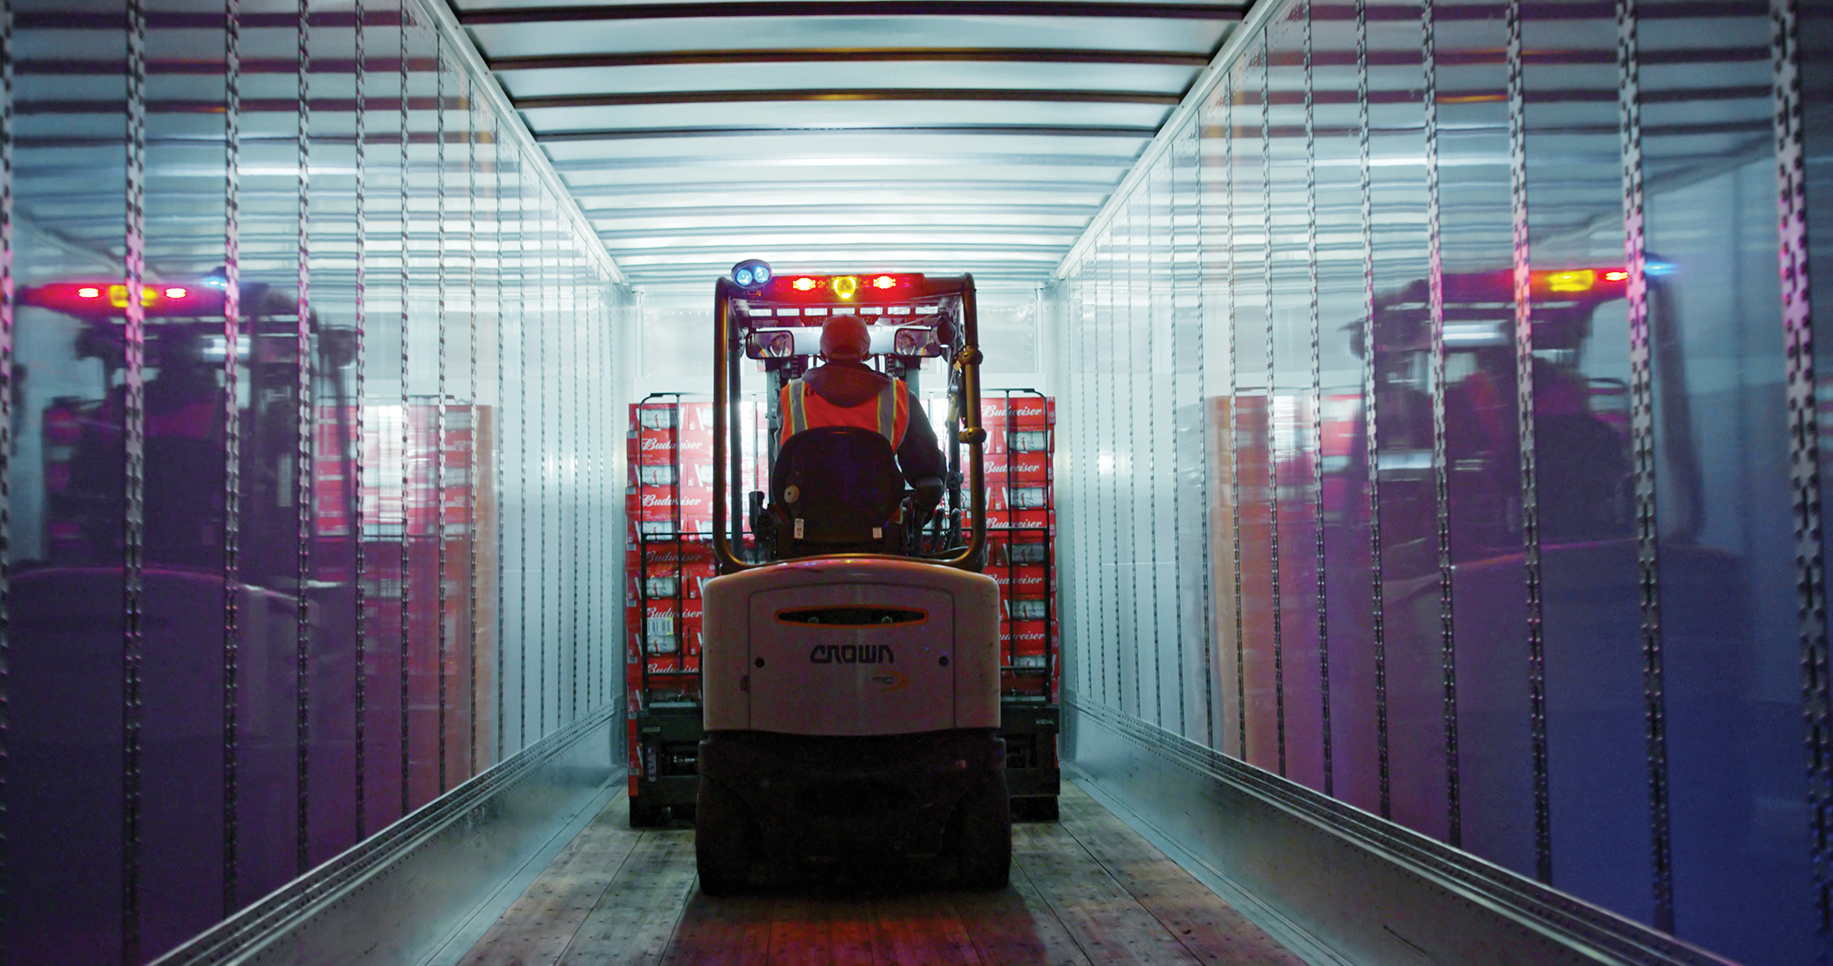 A shipment of Budweiser was loaded onto an autonomous Otto truck last year.